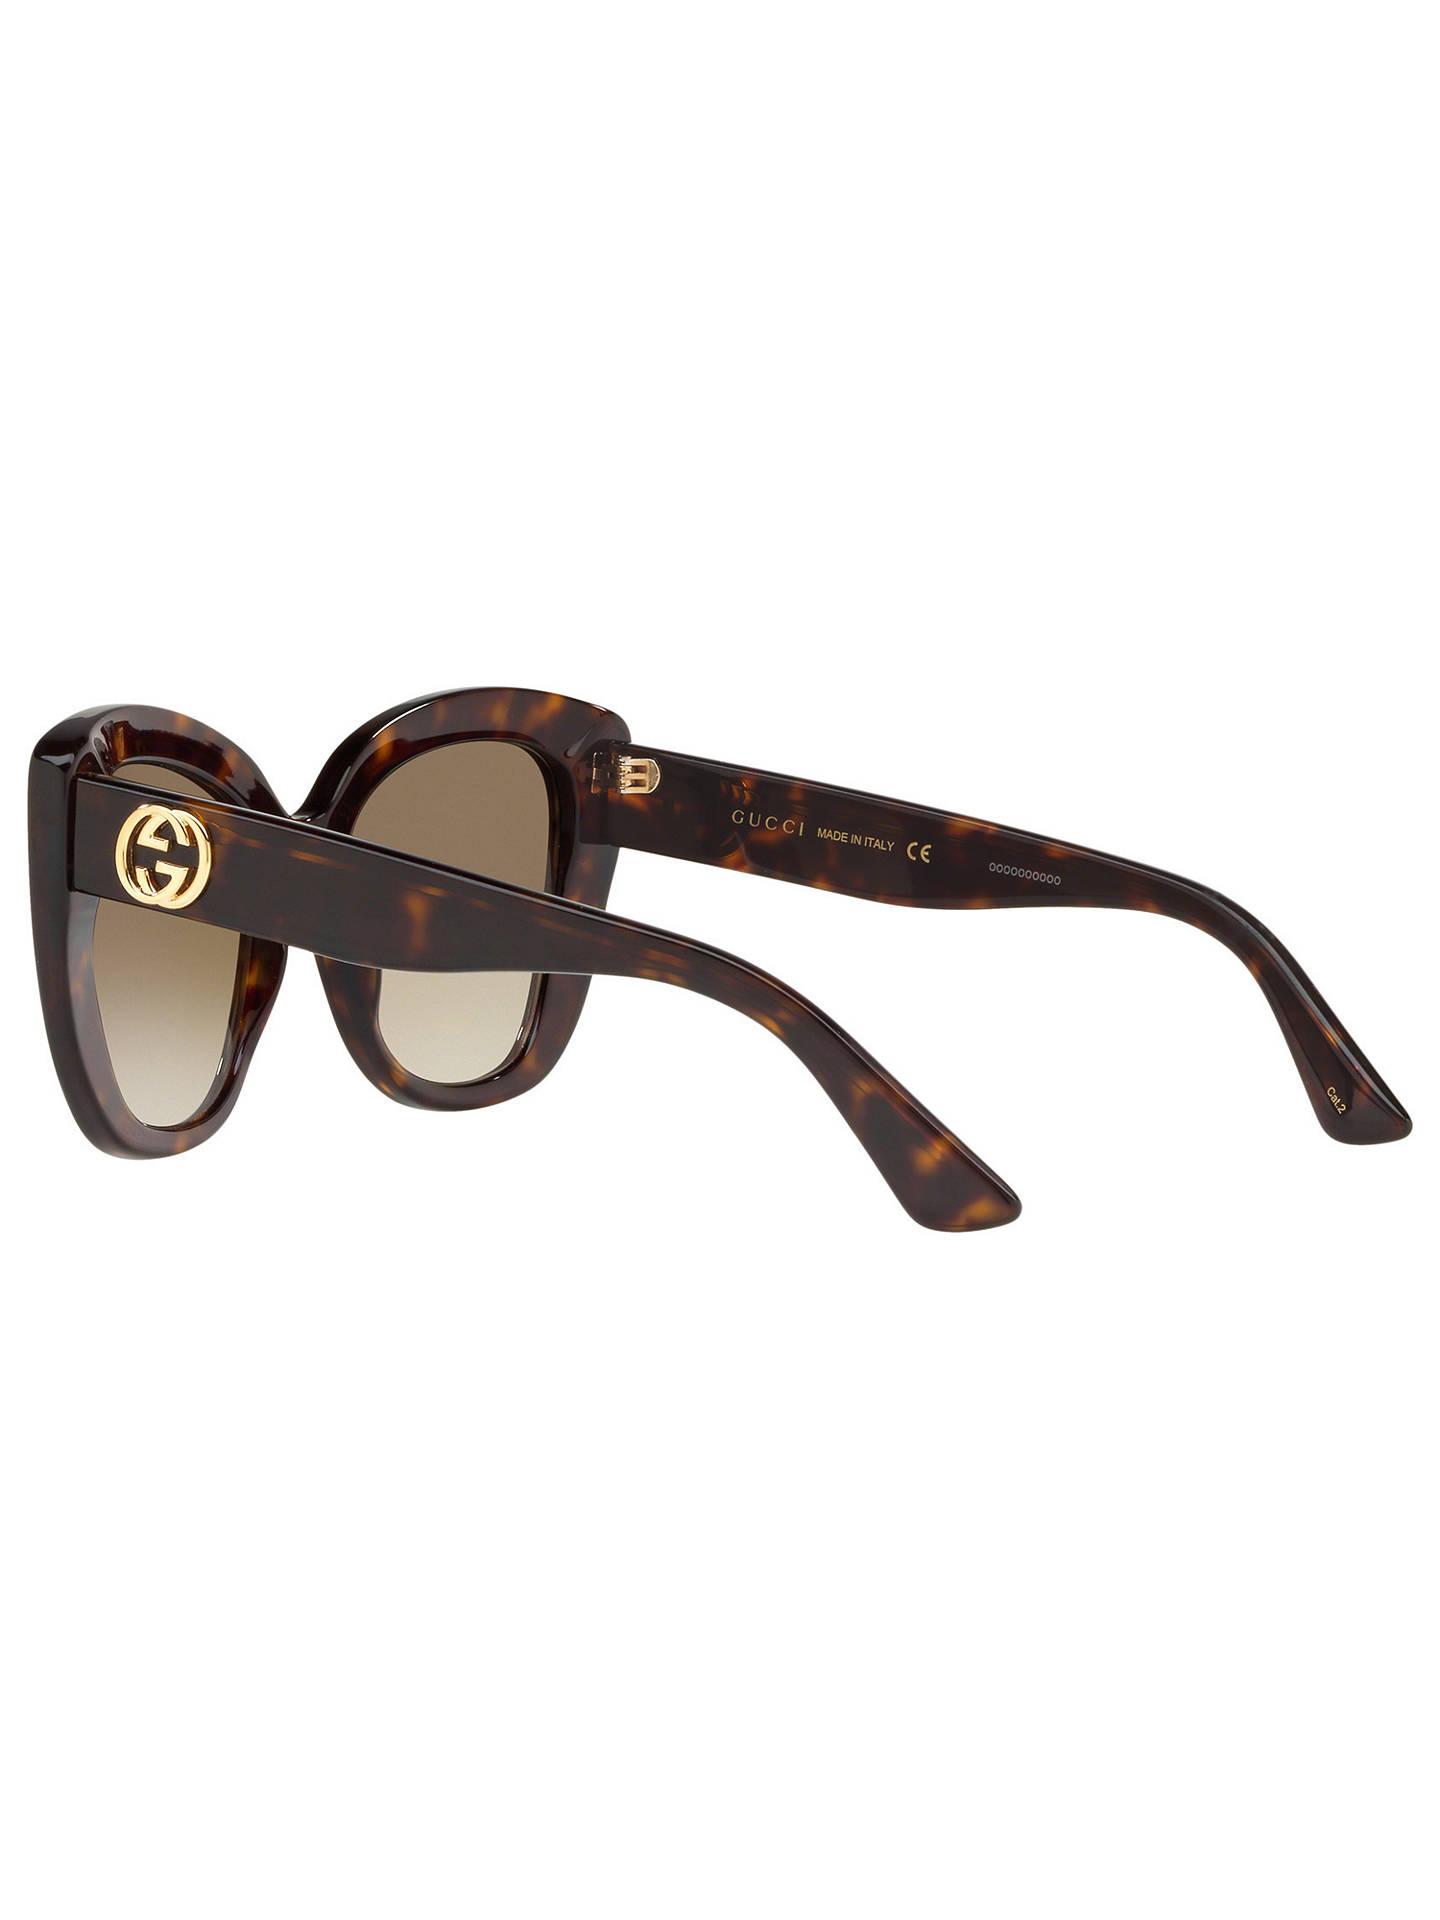 c6a7cd38456 Gucci GG0327S Women s Cat s Eye Sunglasses at John Lewis   Partners